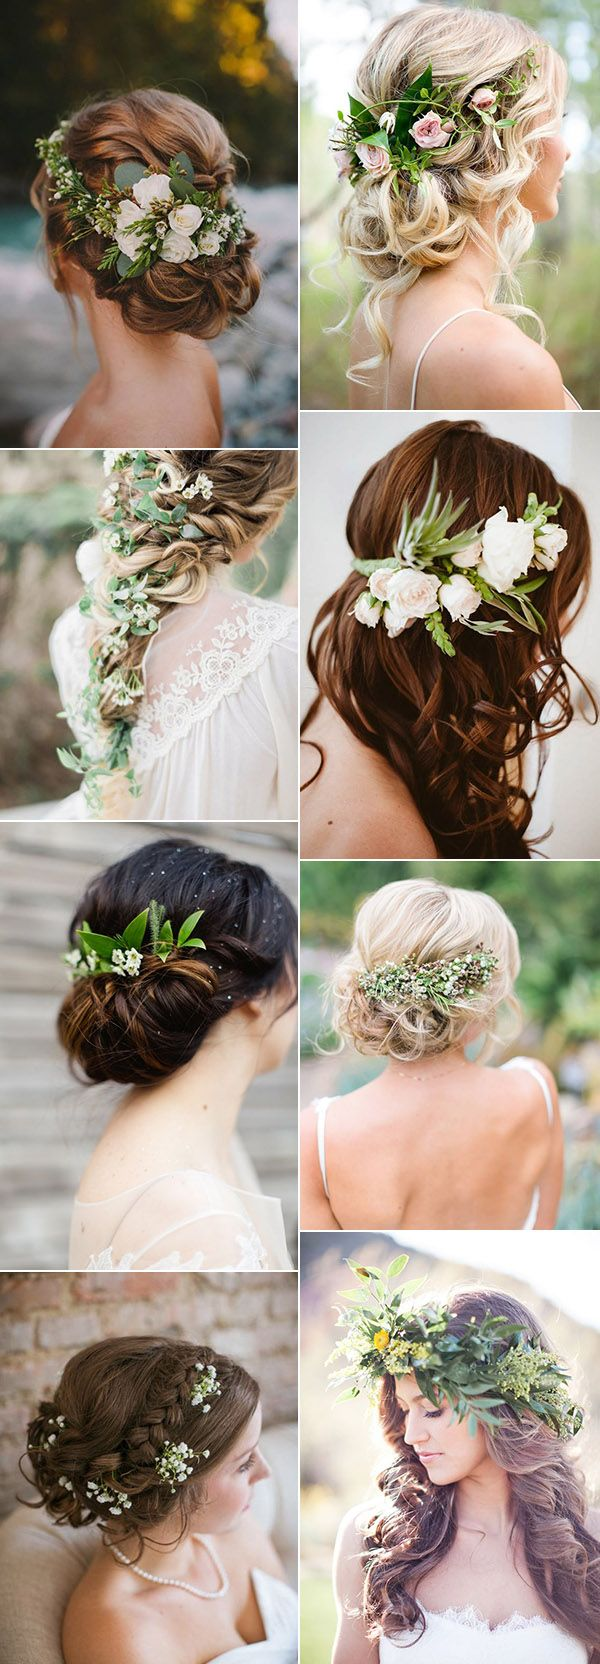 bohemian wedding ideas - diy boho chic wedding | fashion